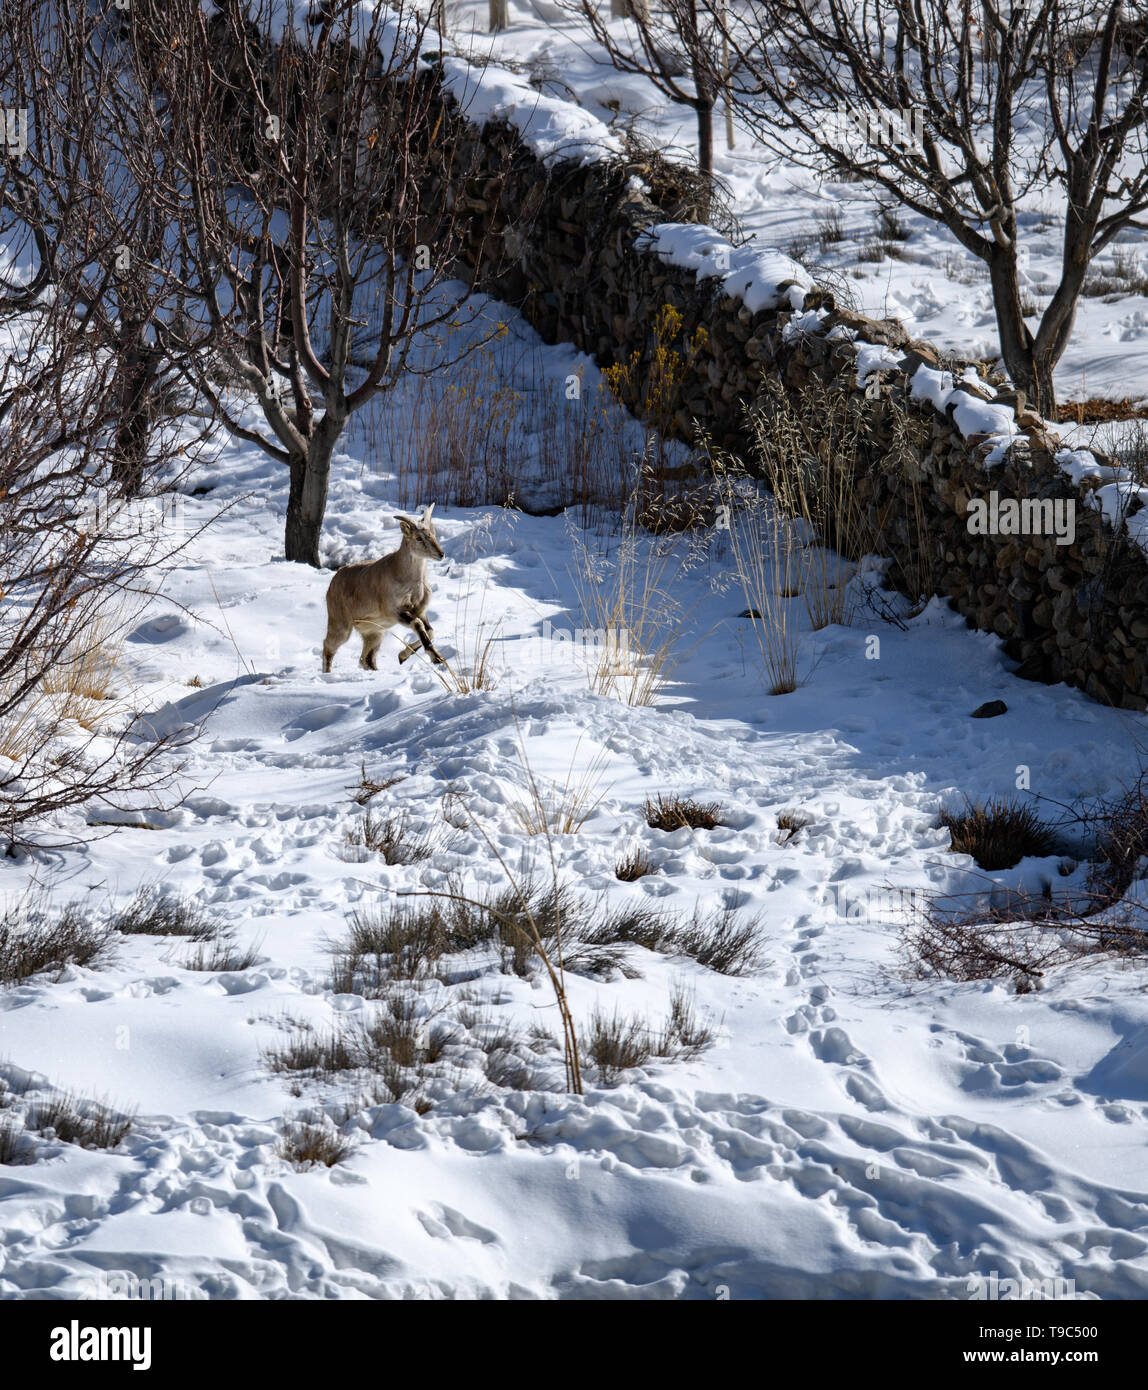 Himalayan Blue Sheep (Pseudois nayaur) also known Bharal or Naur standing and searching food on ice covered Himalayan snow mountain in winter time, - Stock Image